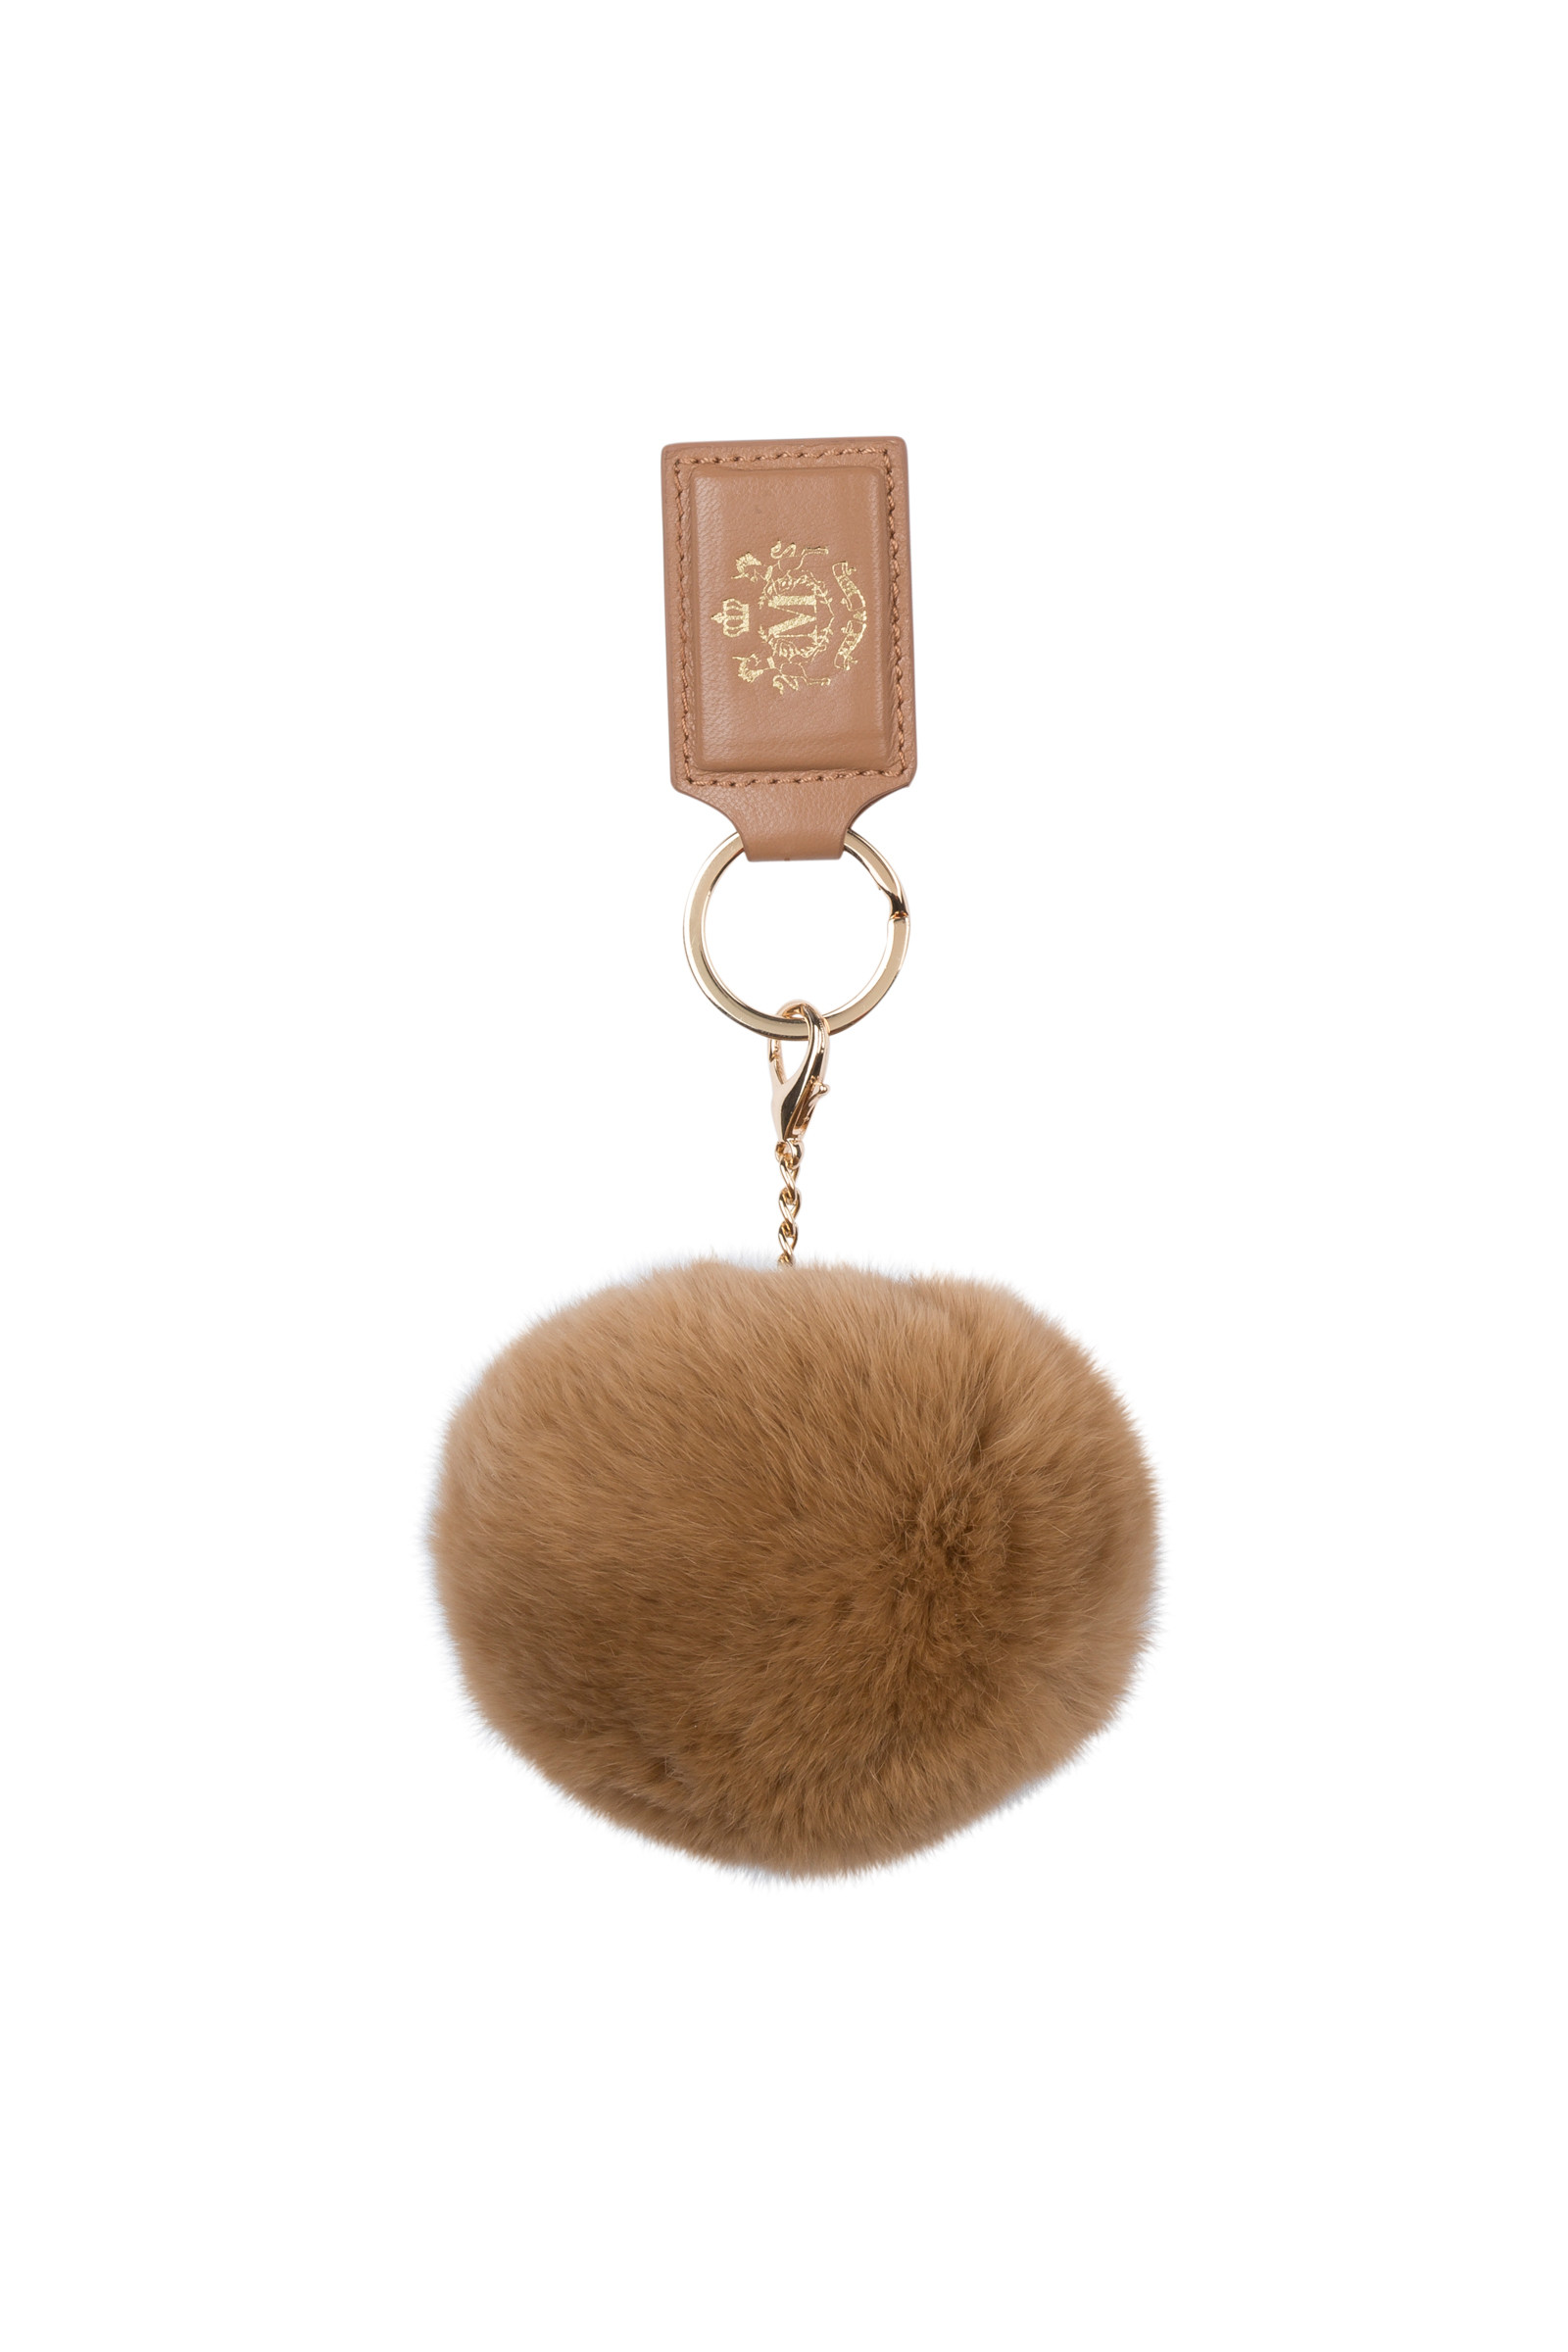 KEY RING ALICIO IN LEATHER AND FUR BEIGE